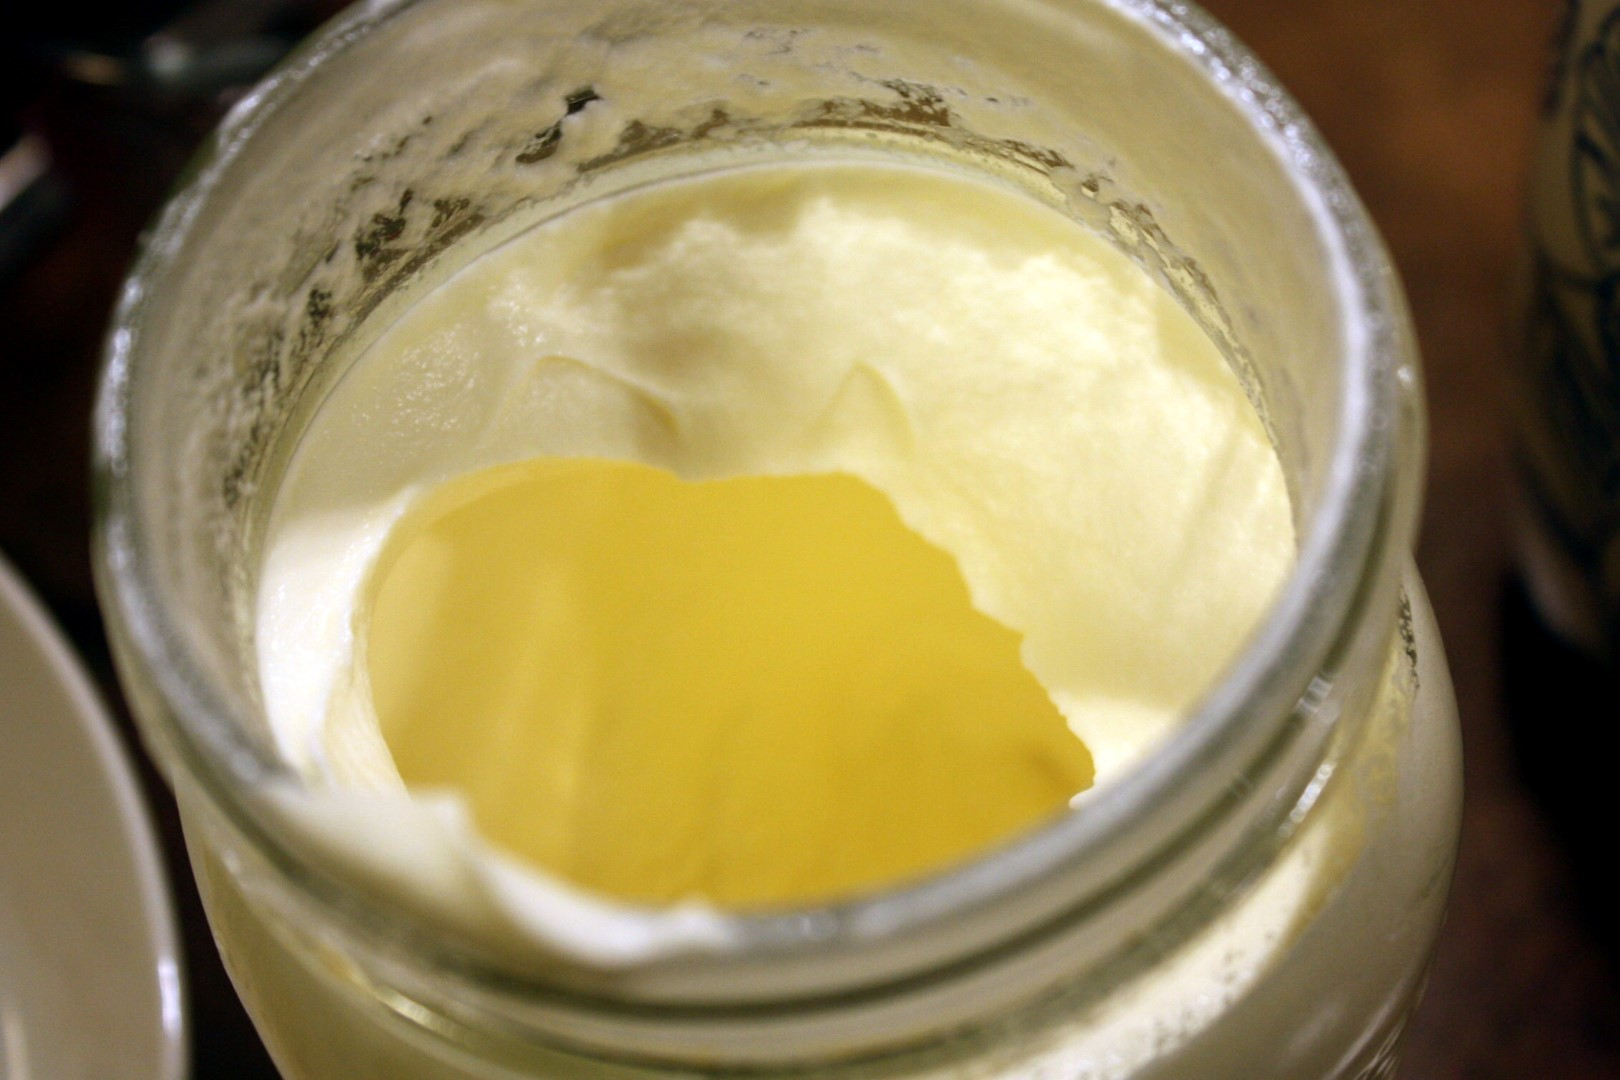 Cream whipped in a jar.